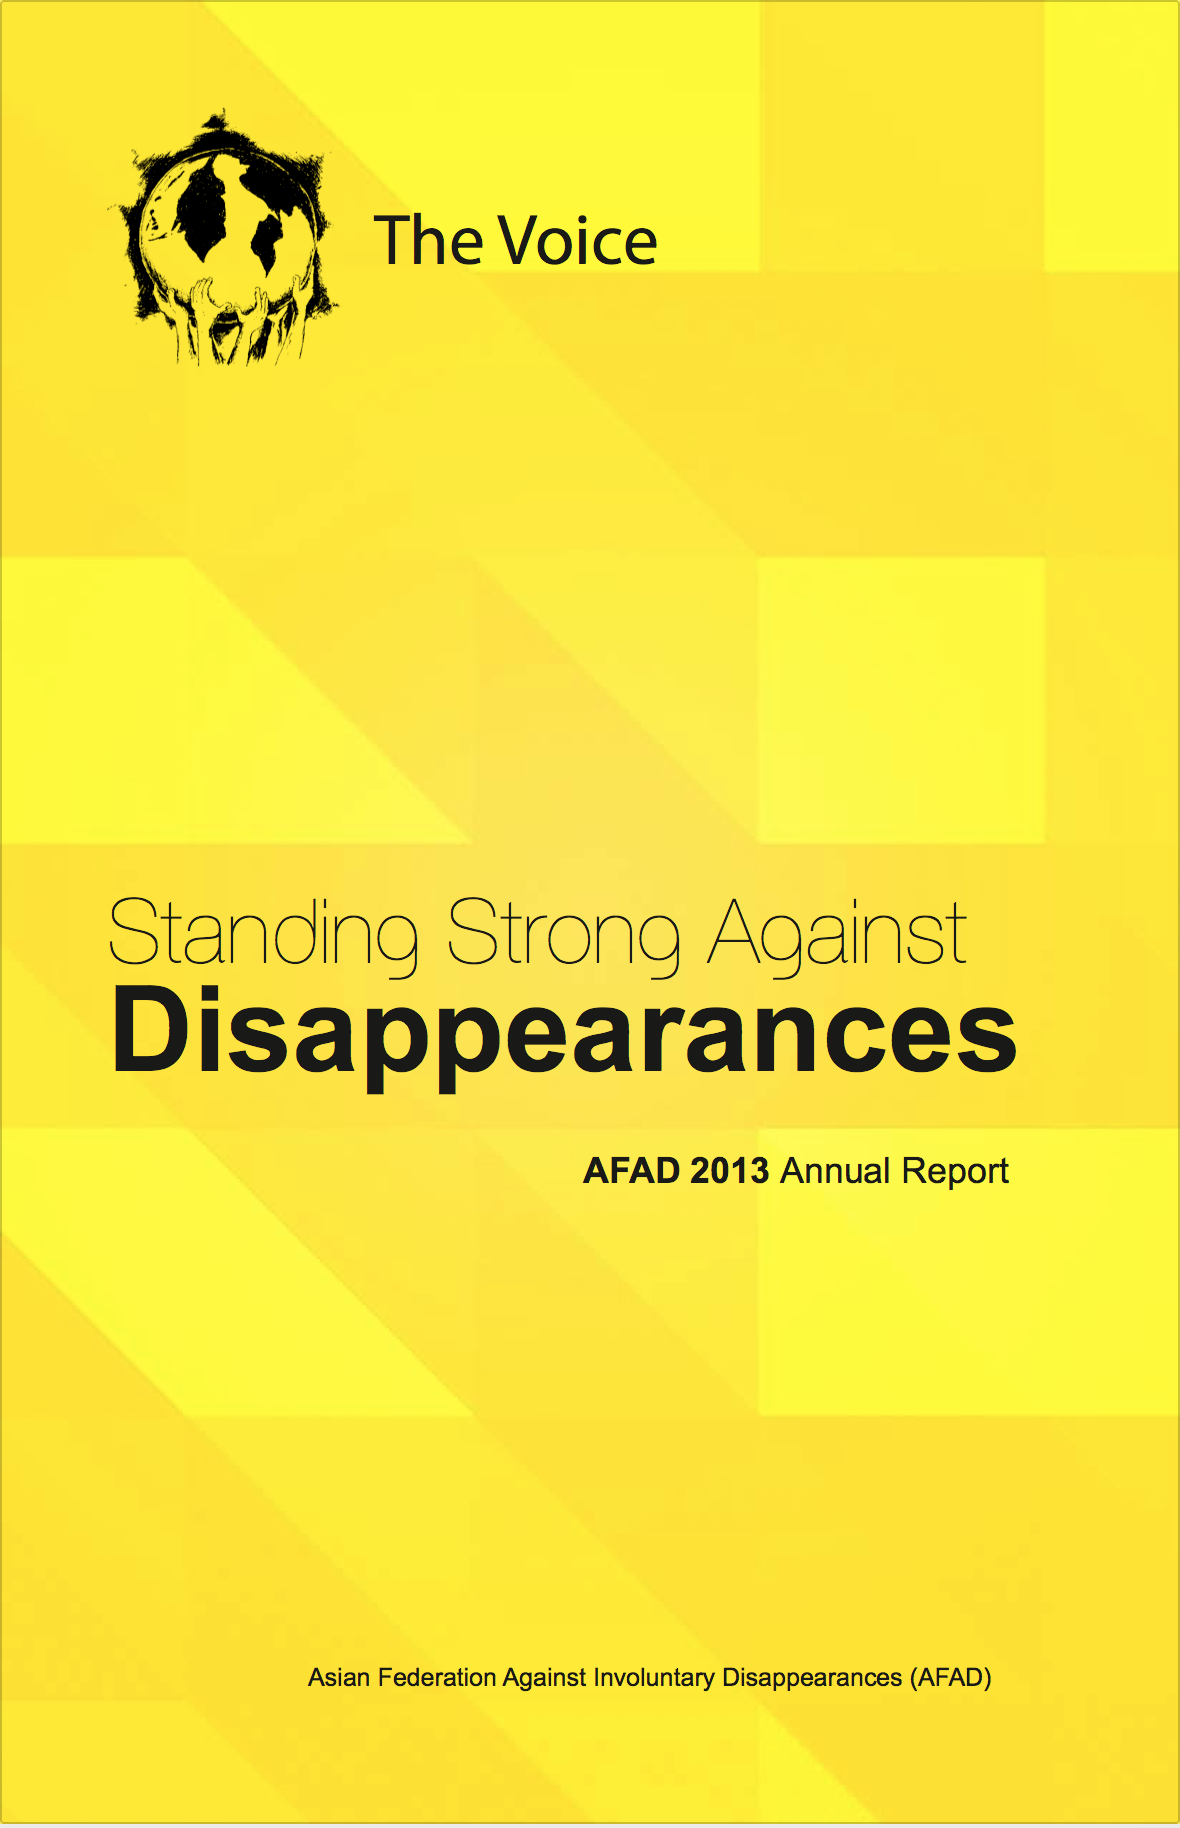 cover.2013.afad.annual.report